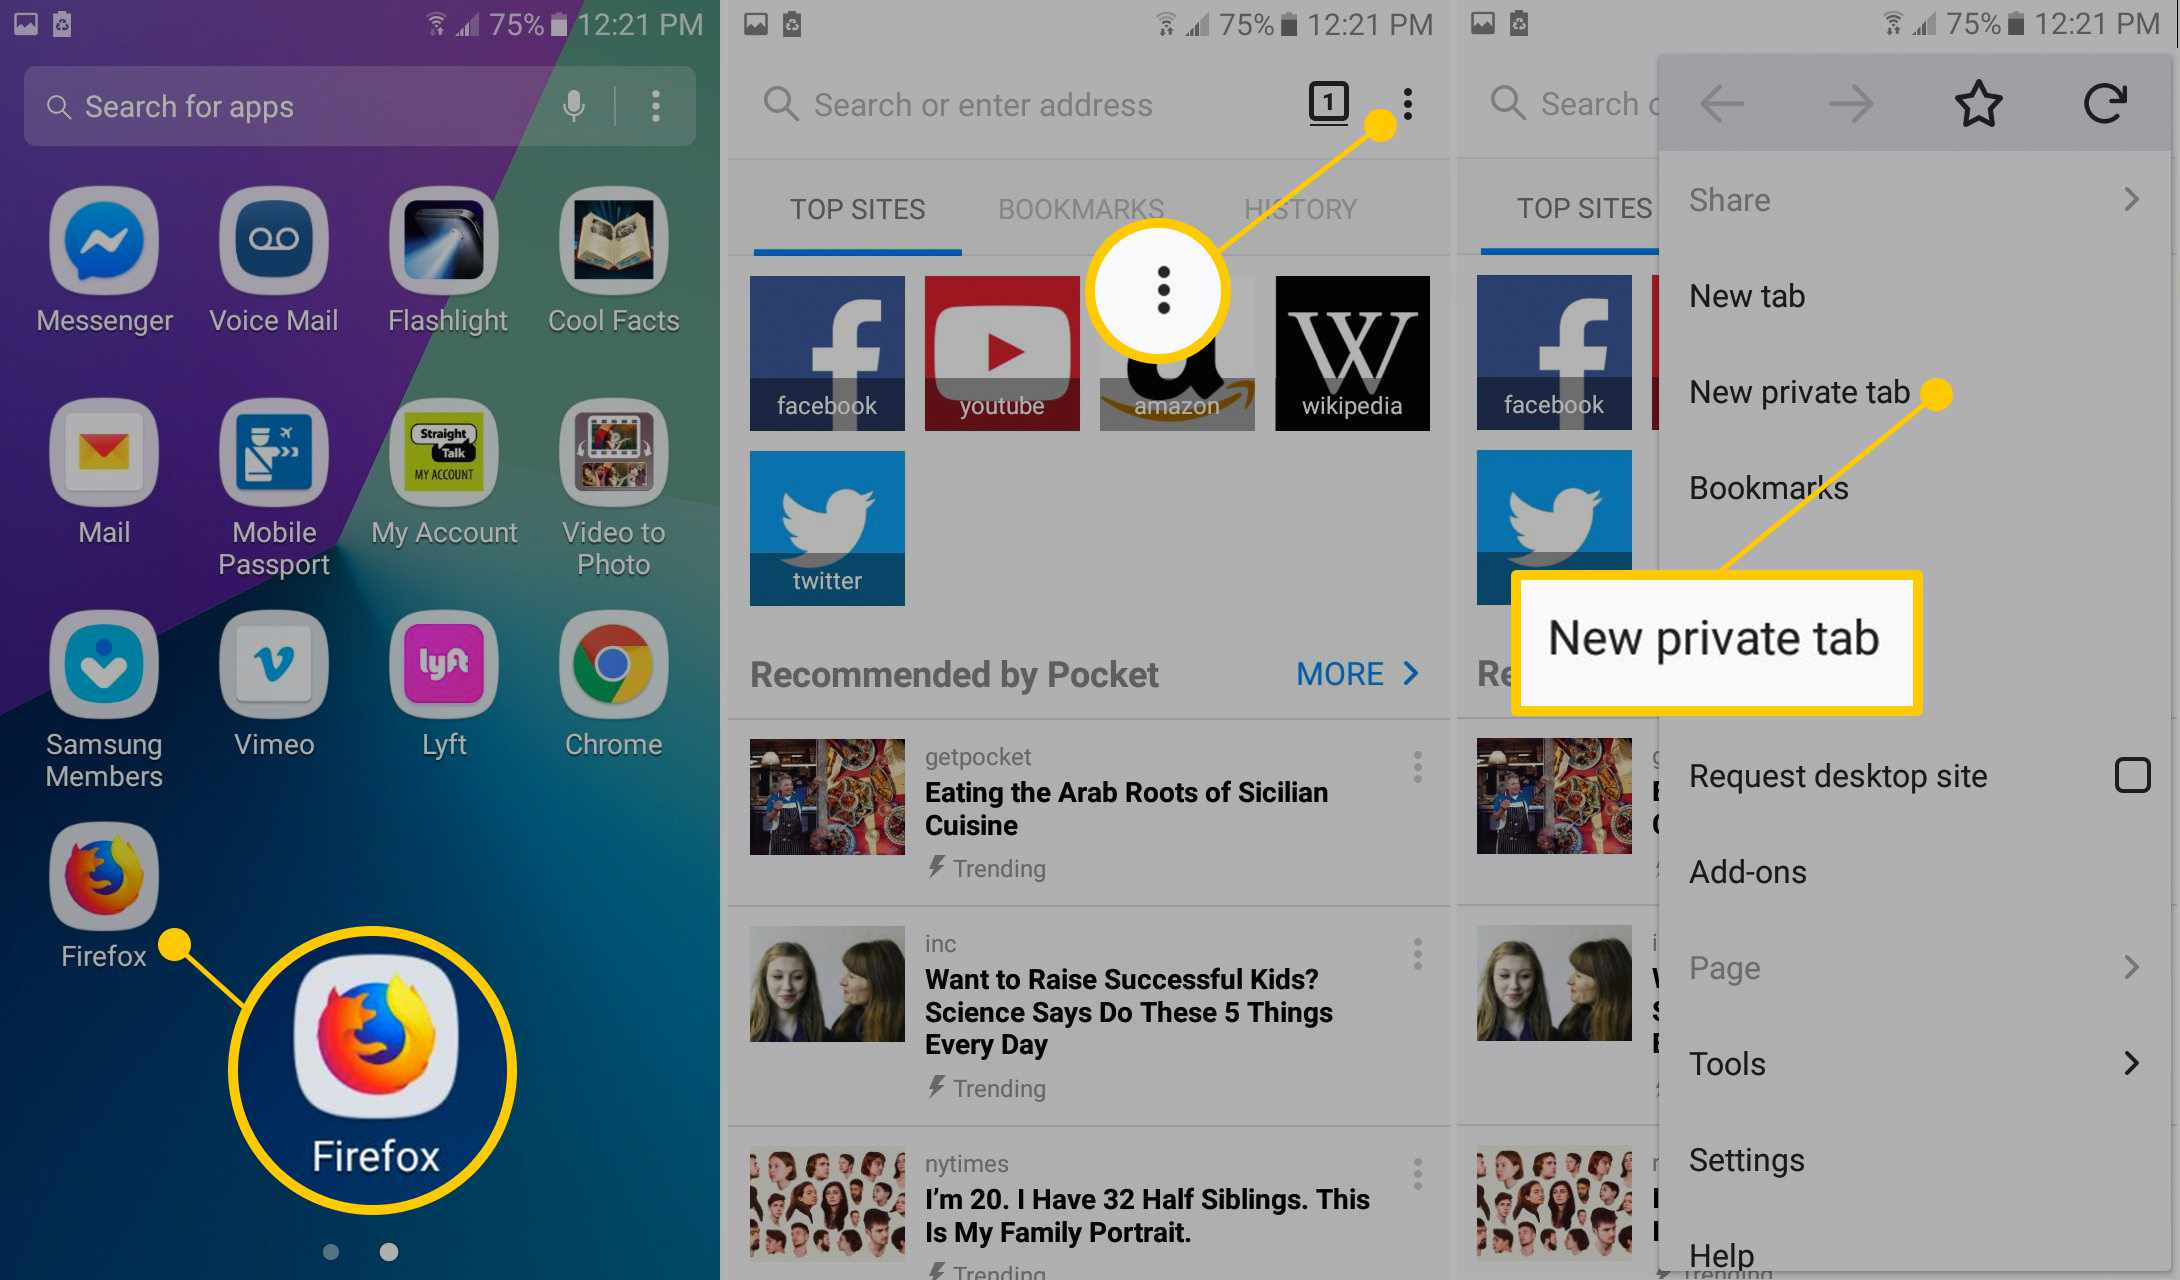 Firefox icon, dot menu, New private tab on Android